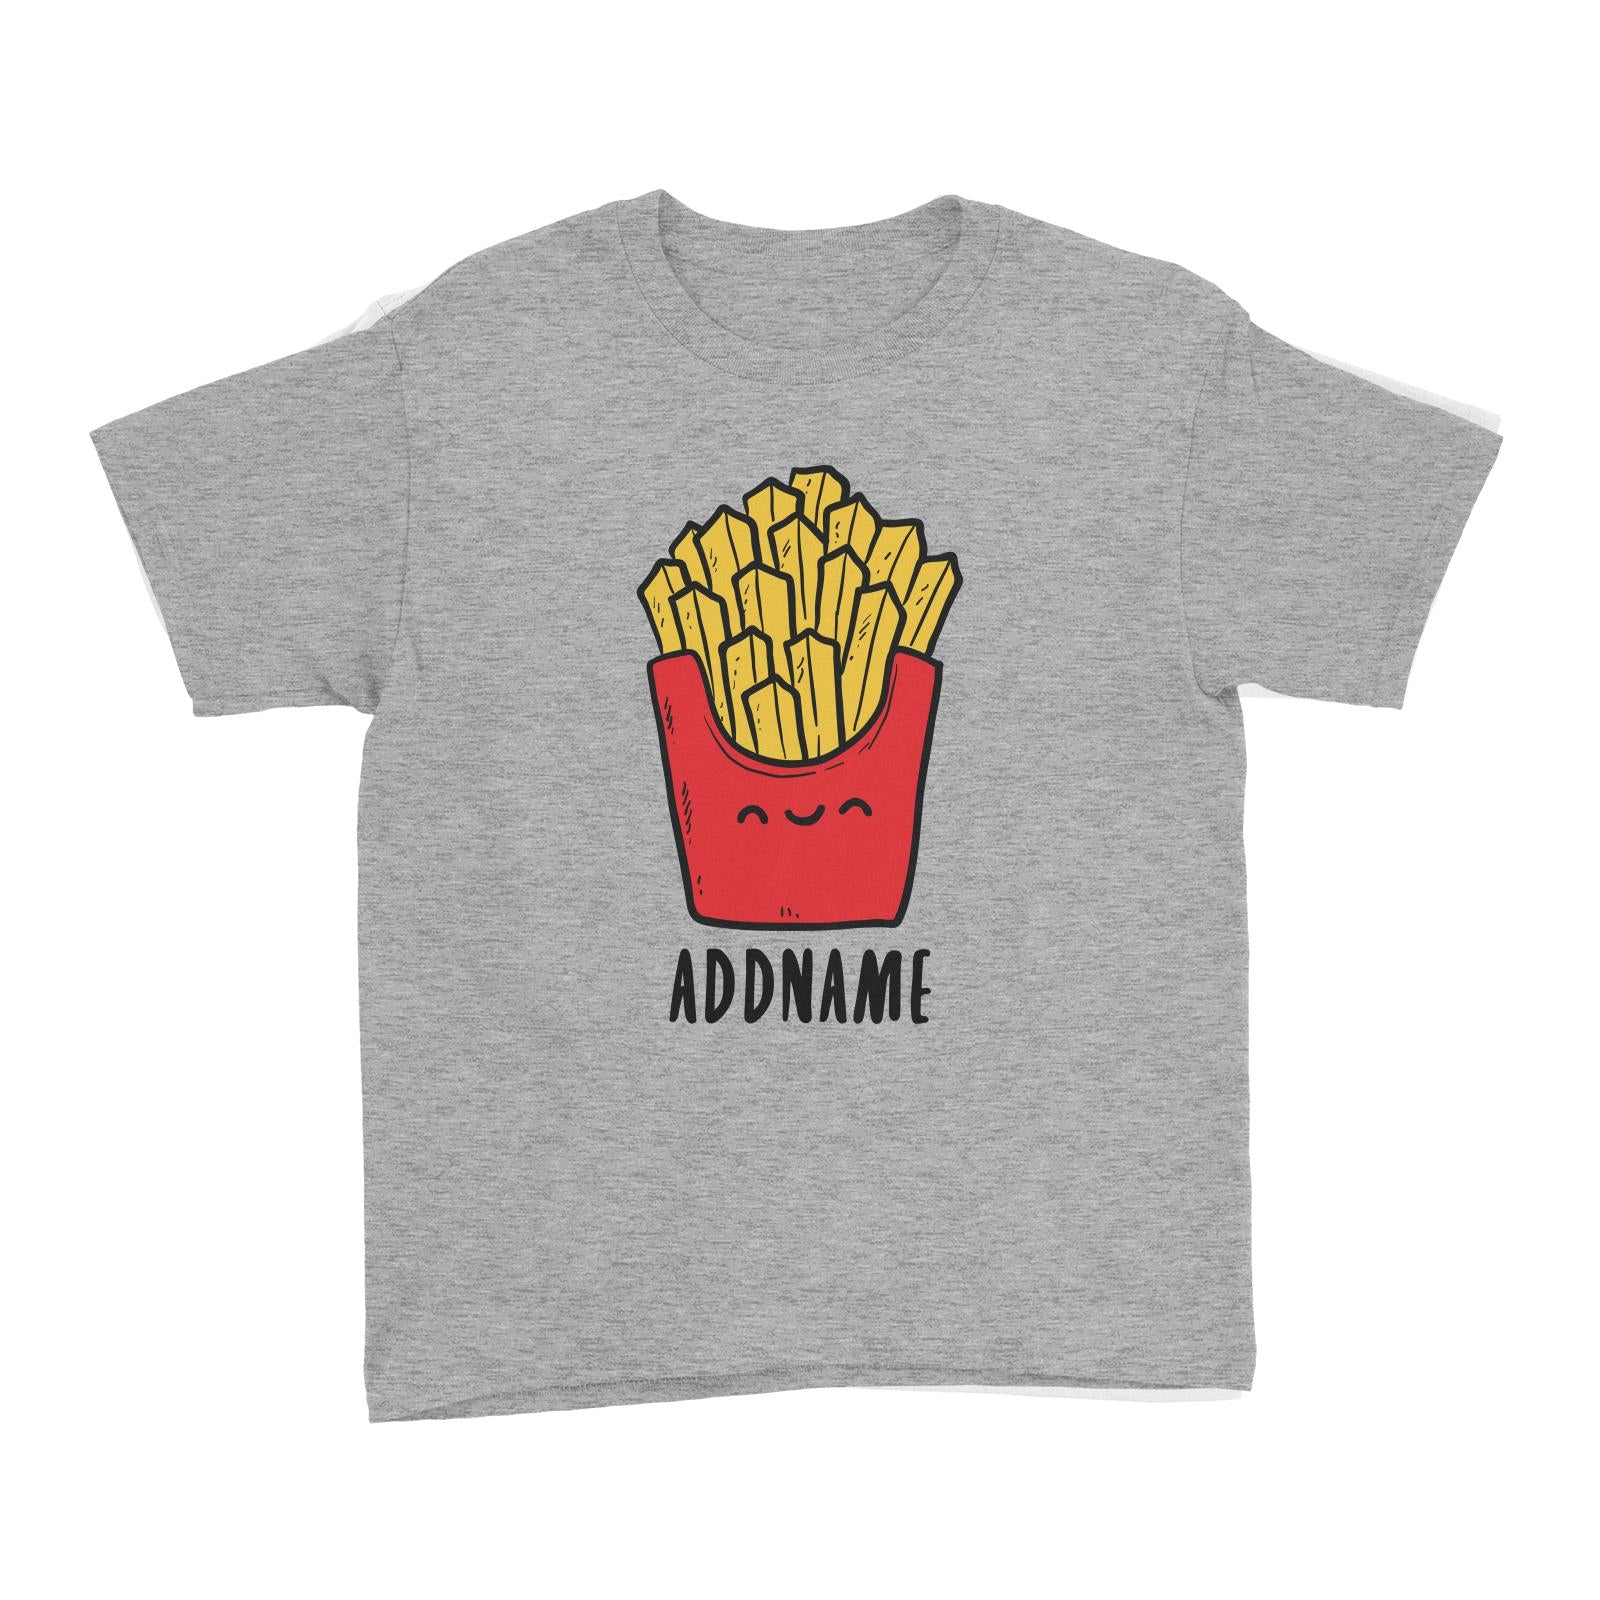 Fast Food Fries Addname Kid's T-Shirt  Matching Family Comic Cartoon Personalizable Designs